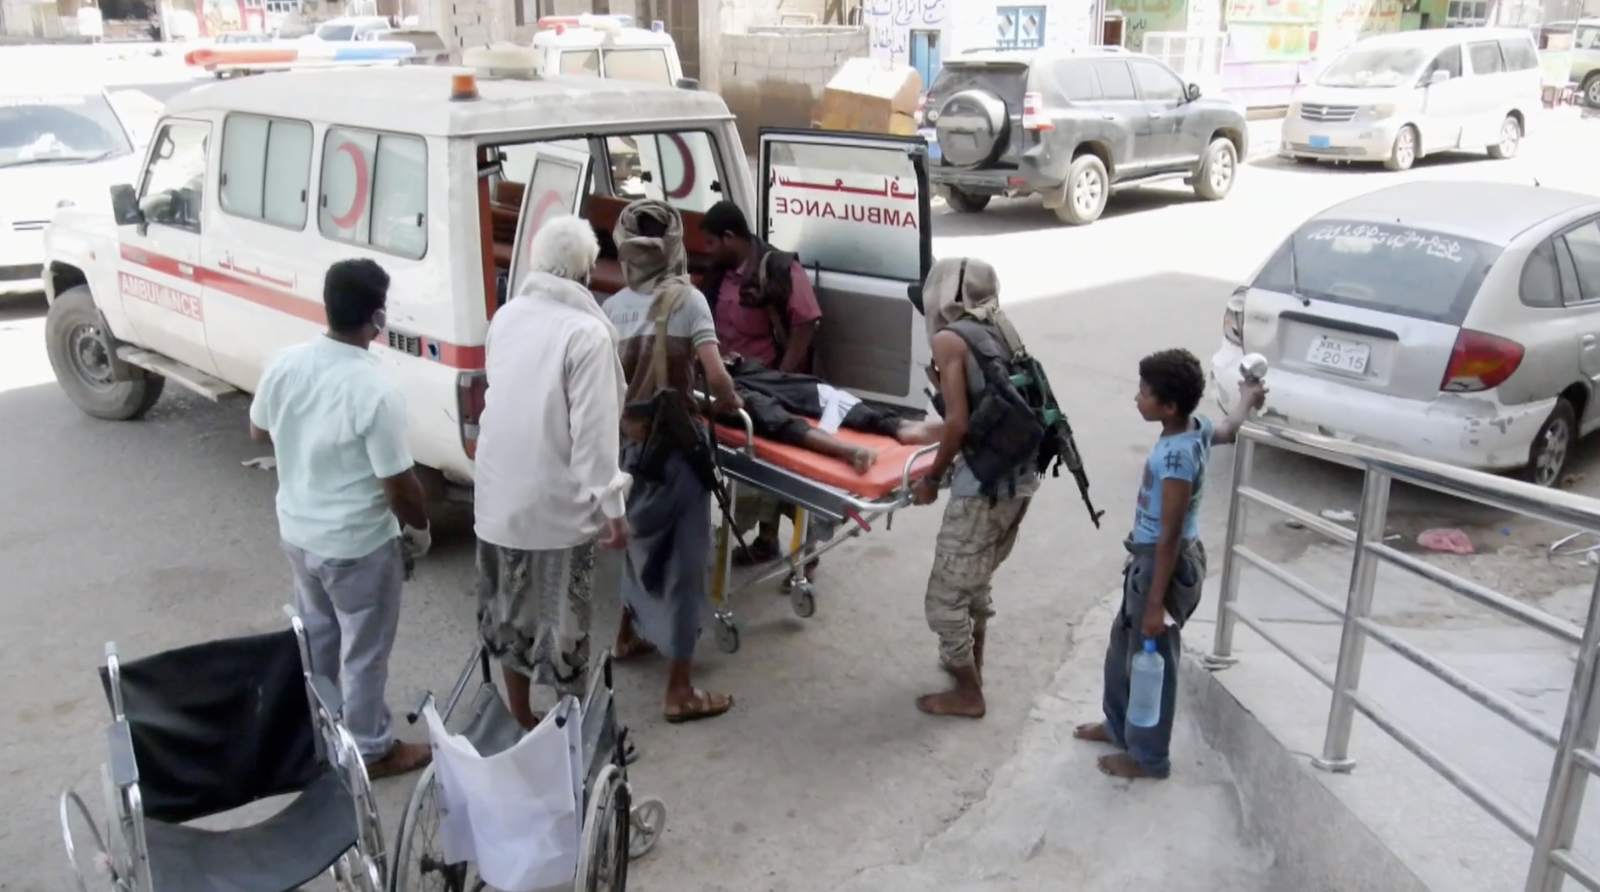 Doctors fear silent Covid disaster in Yemen - channel 4